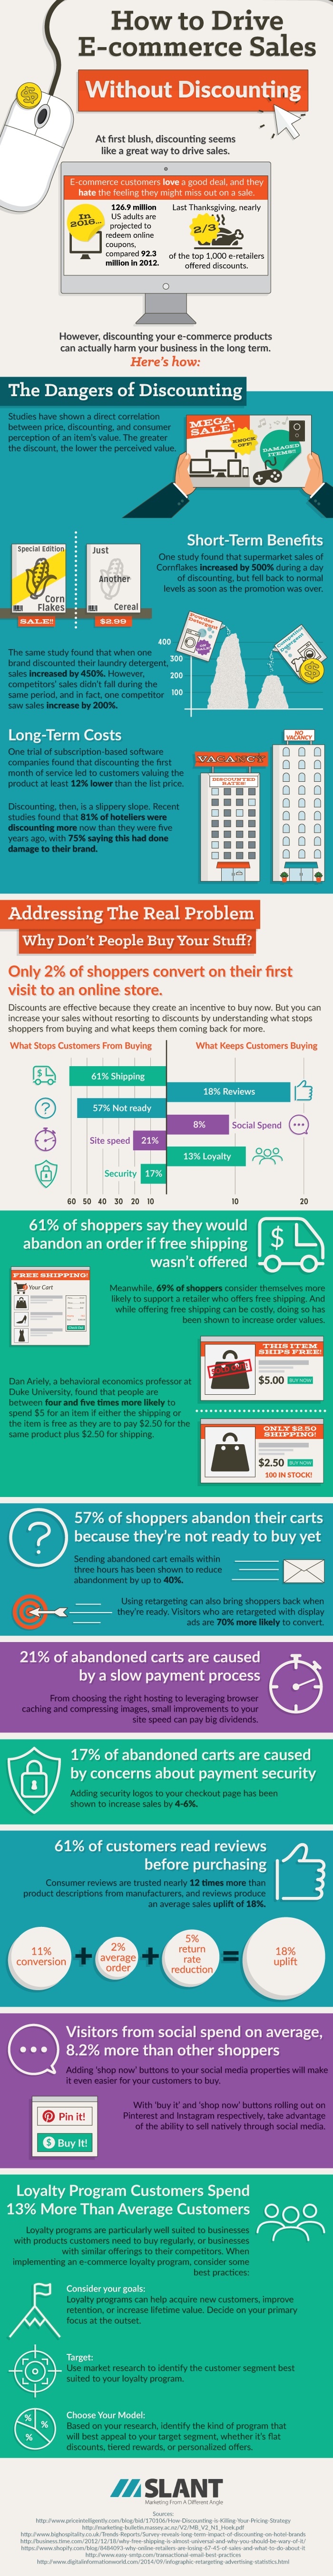 How to Drive Discount Sales Without Discounting Infographic